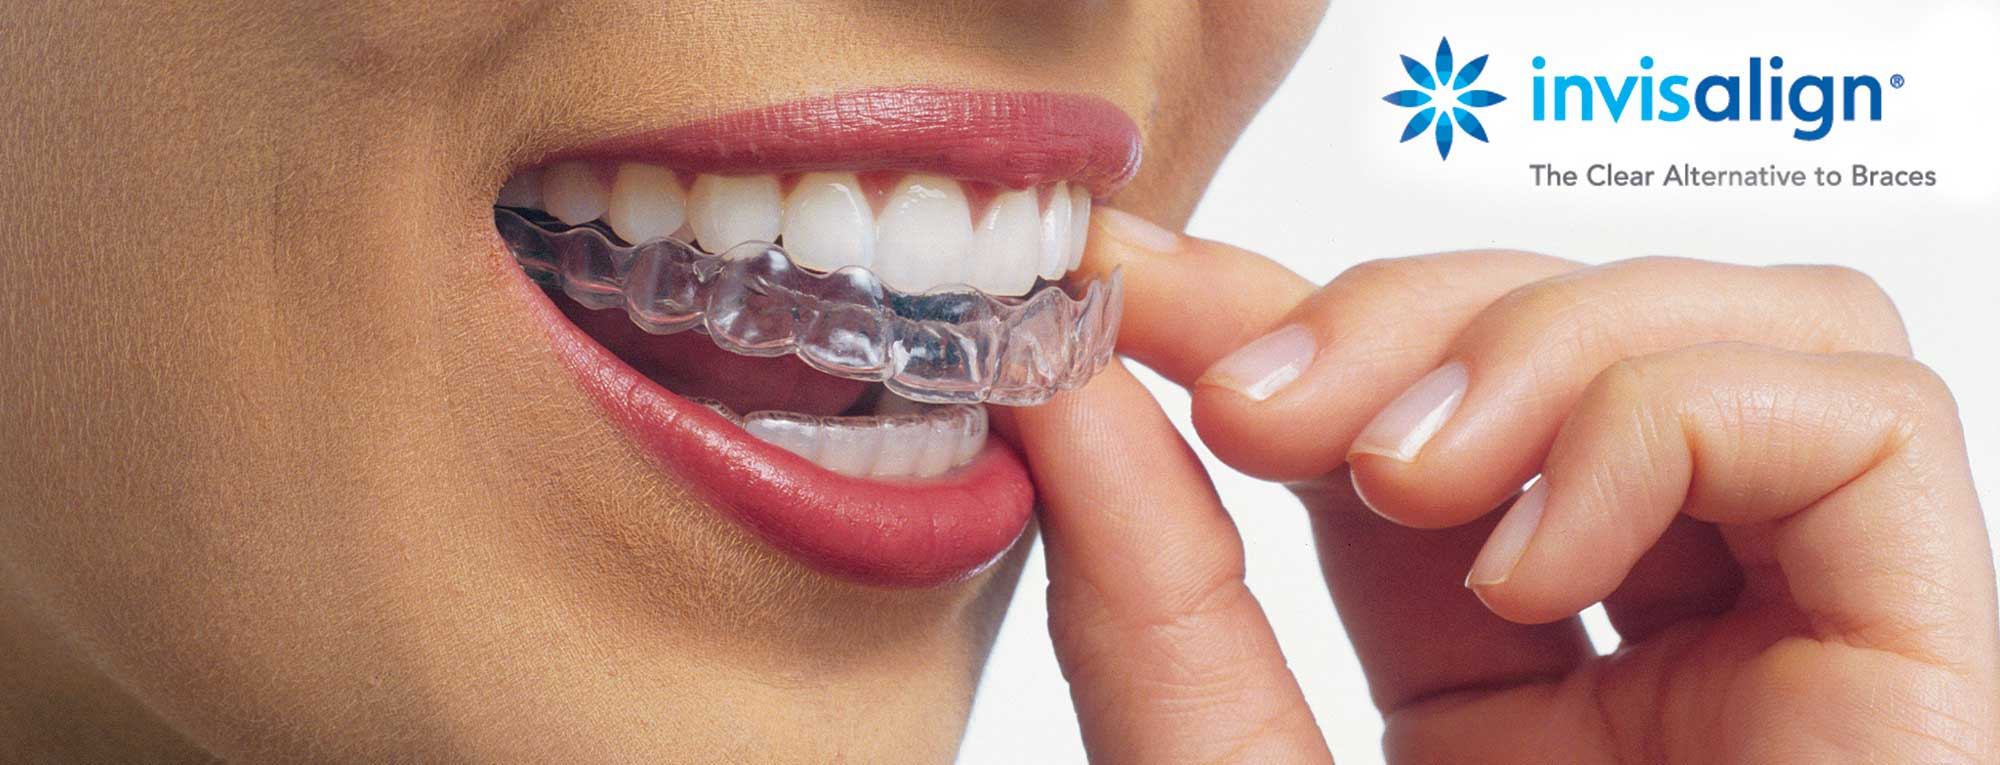 Invisalign - Clear Dental Aligners